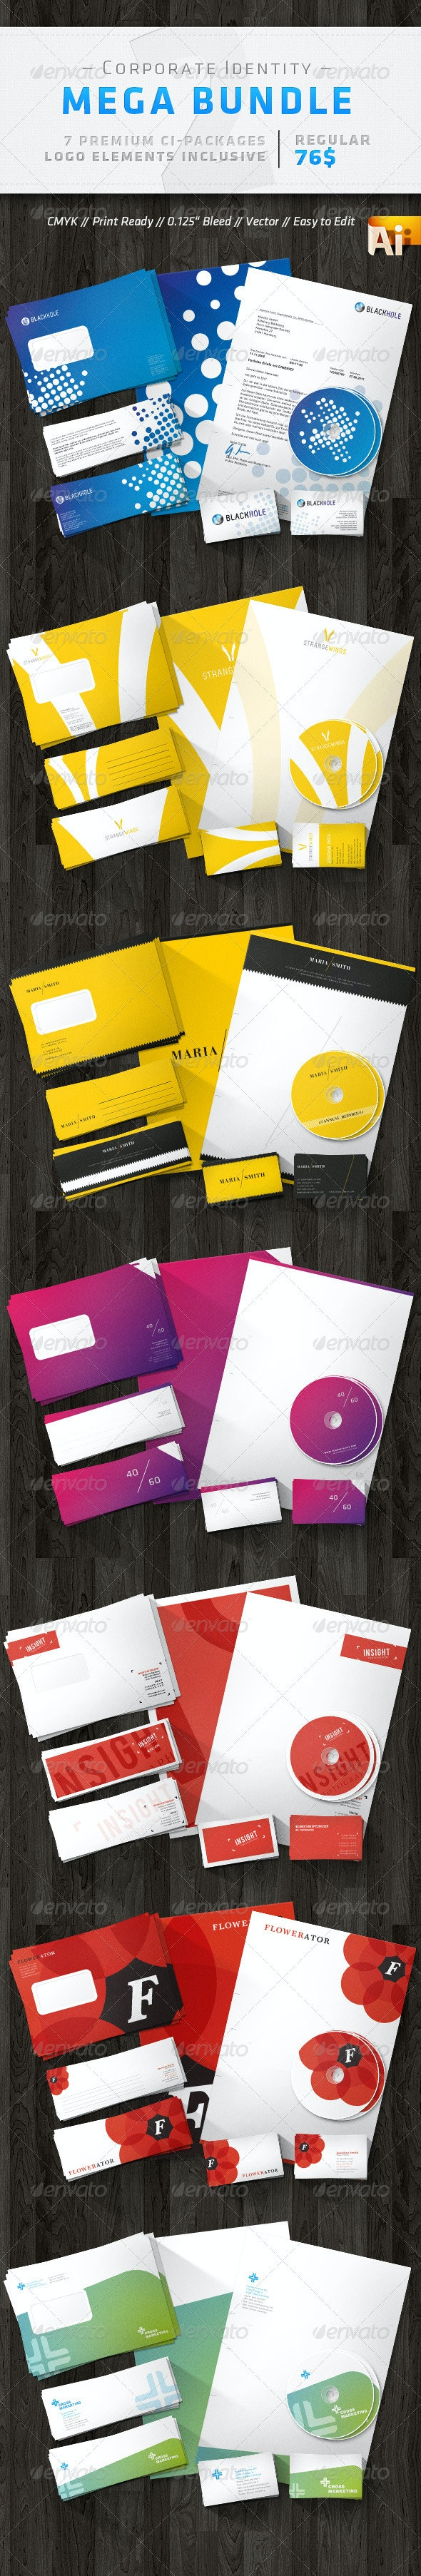 Corporate Identity Mega Bunde V2 - Stationery Print Templates